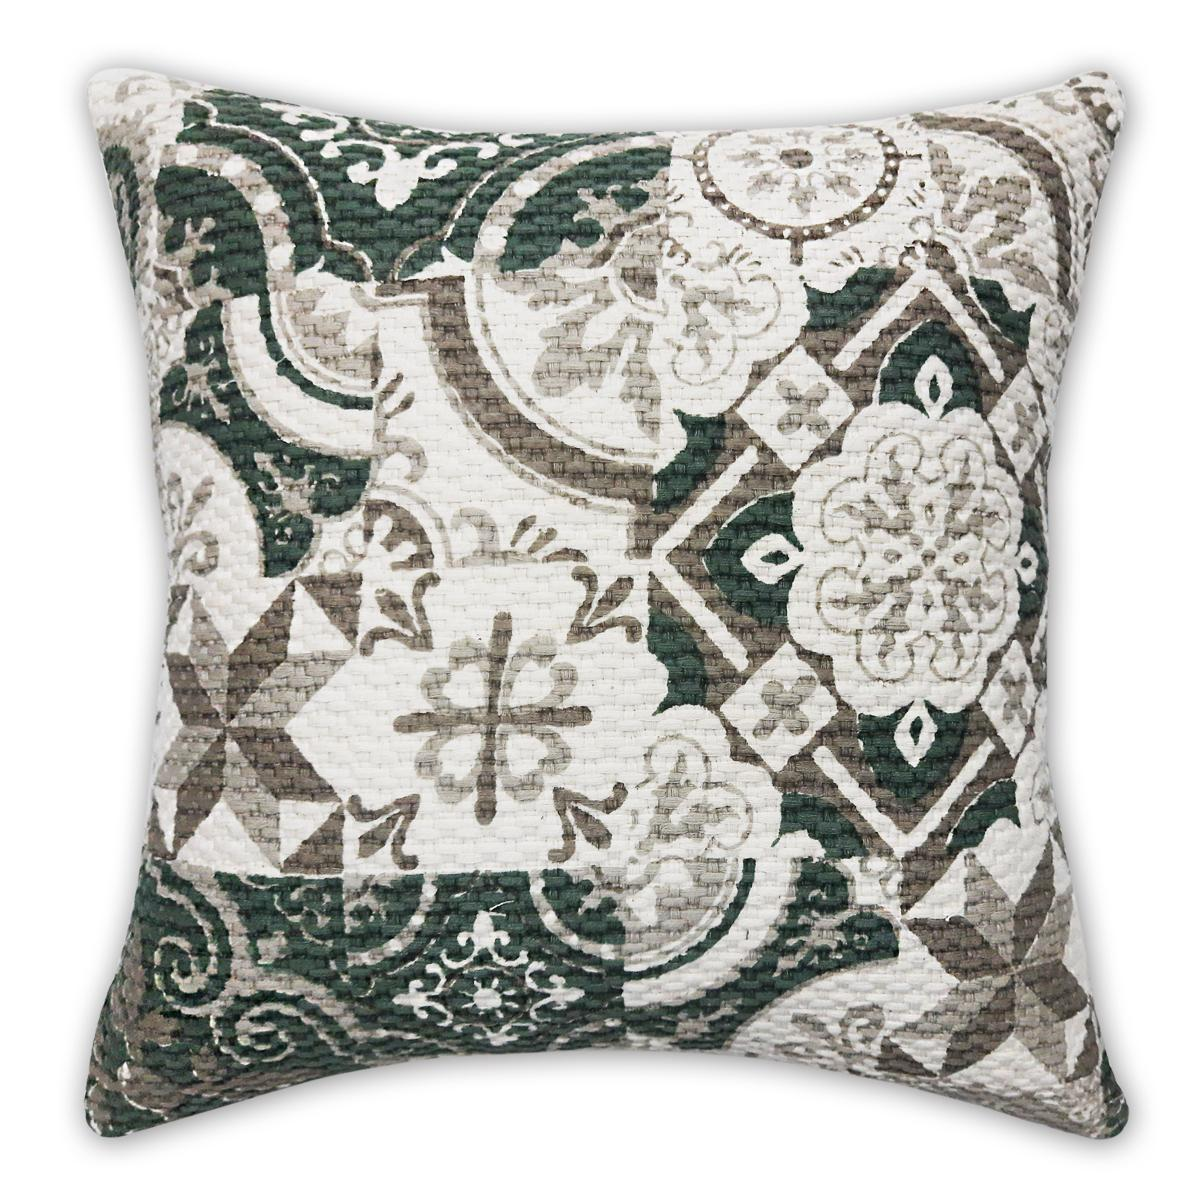 S926 GREEN CUSHION COVER